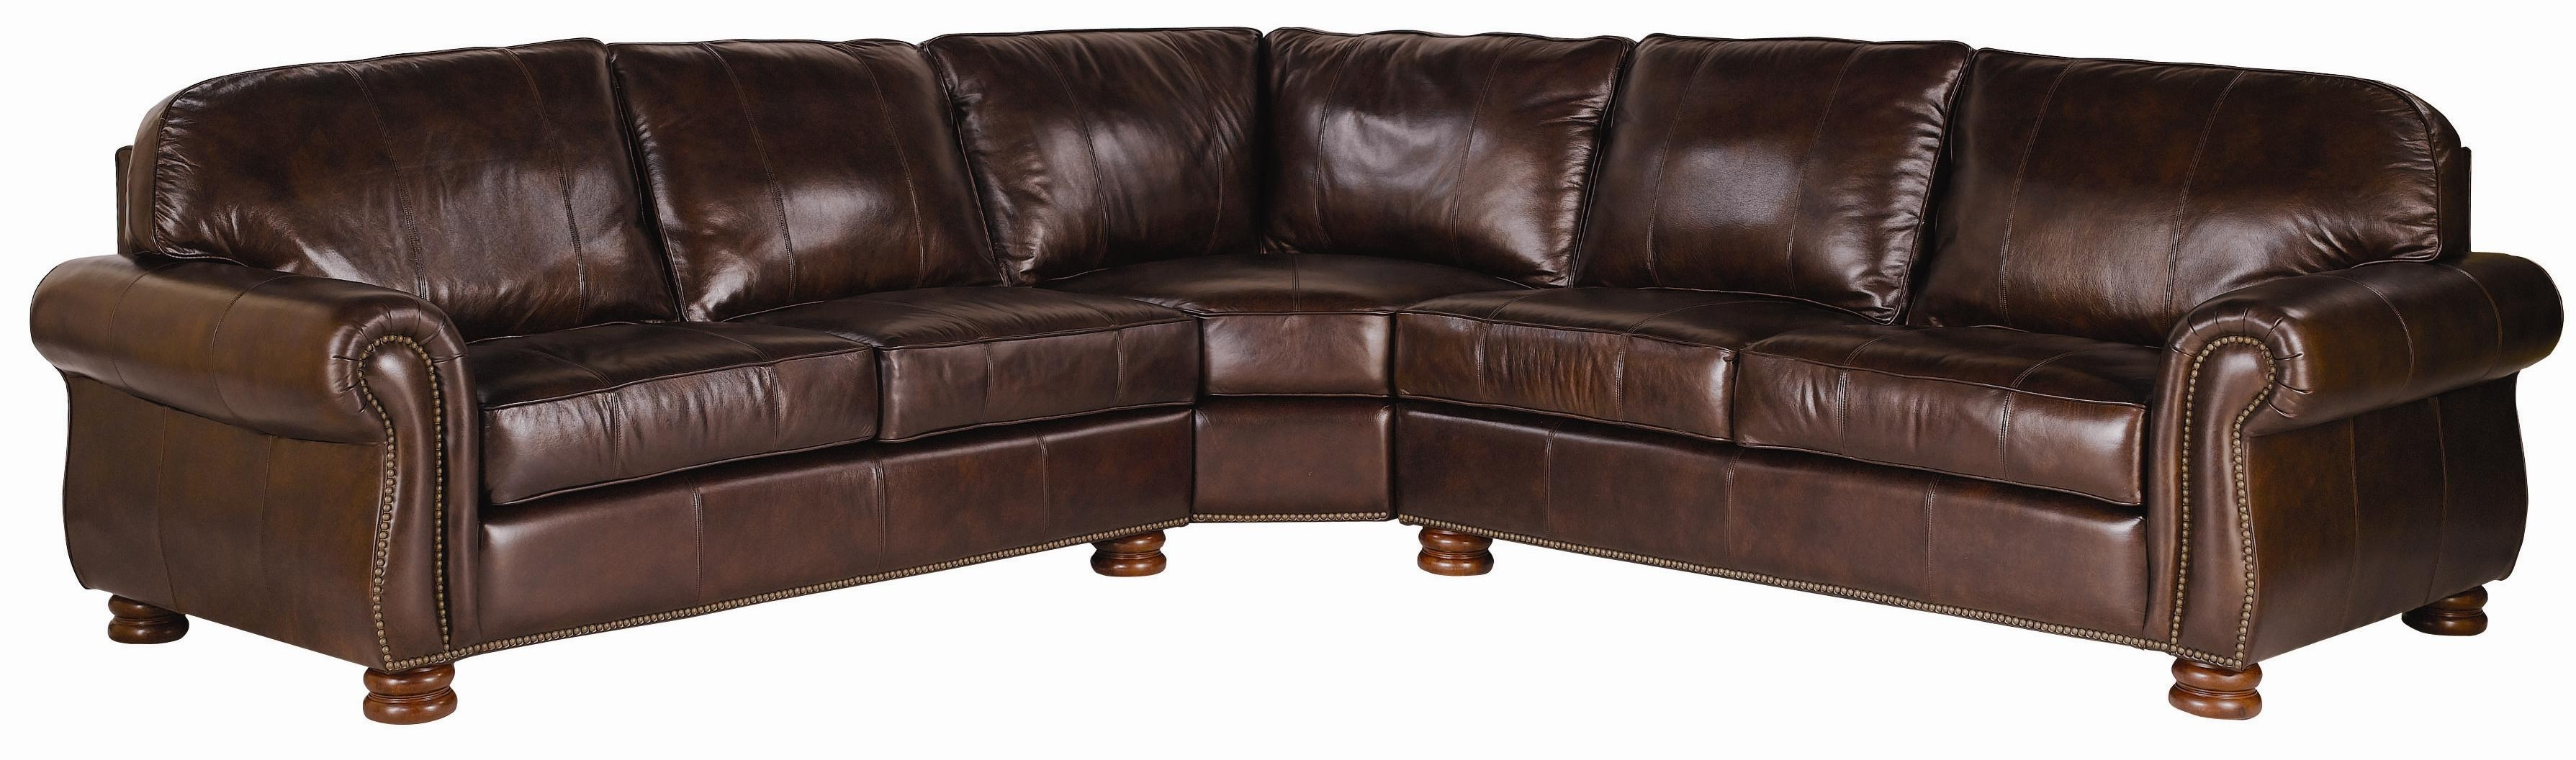 Thomasville® Leather Choices – Benjamin Leather Select 3 Piece For Thomasville Sectional Sofas (Image 10 of 10)